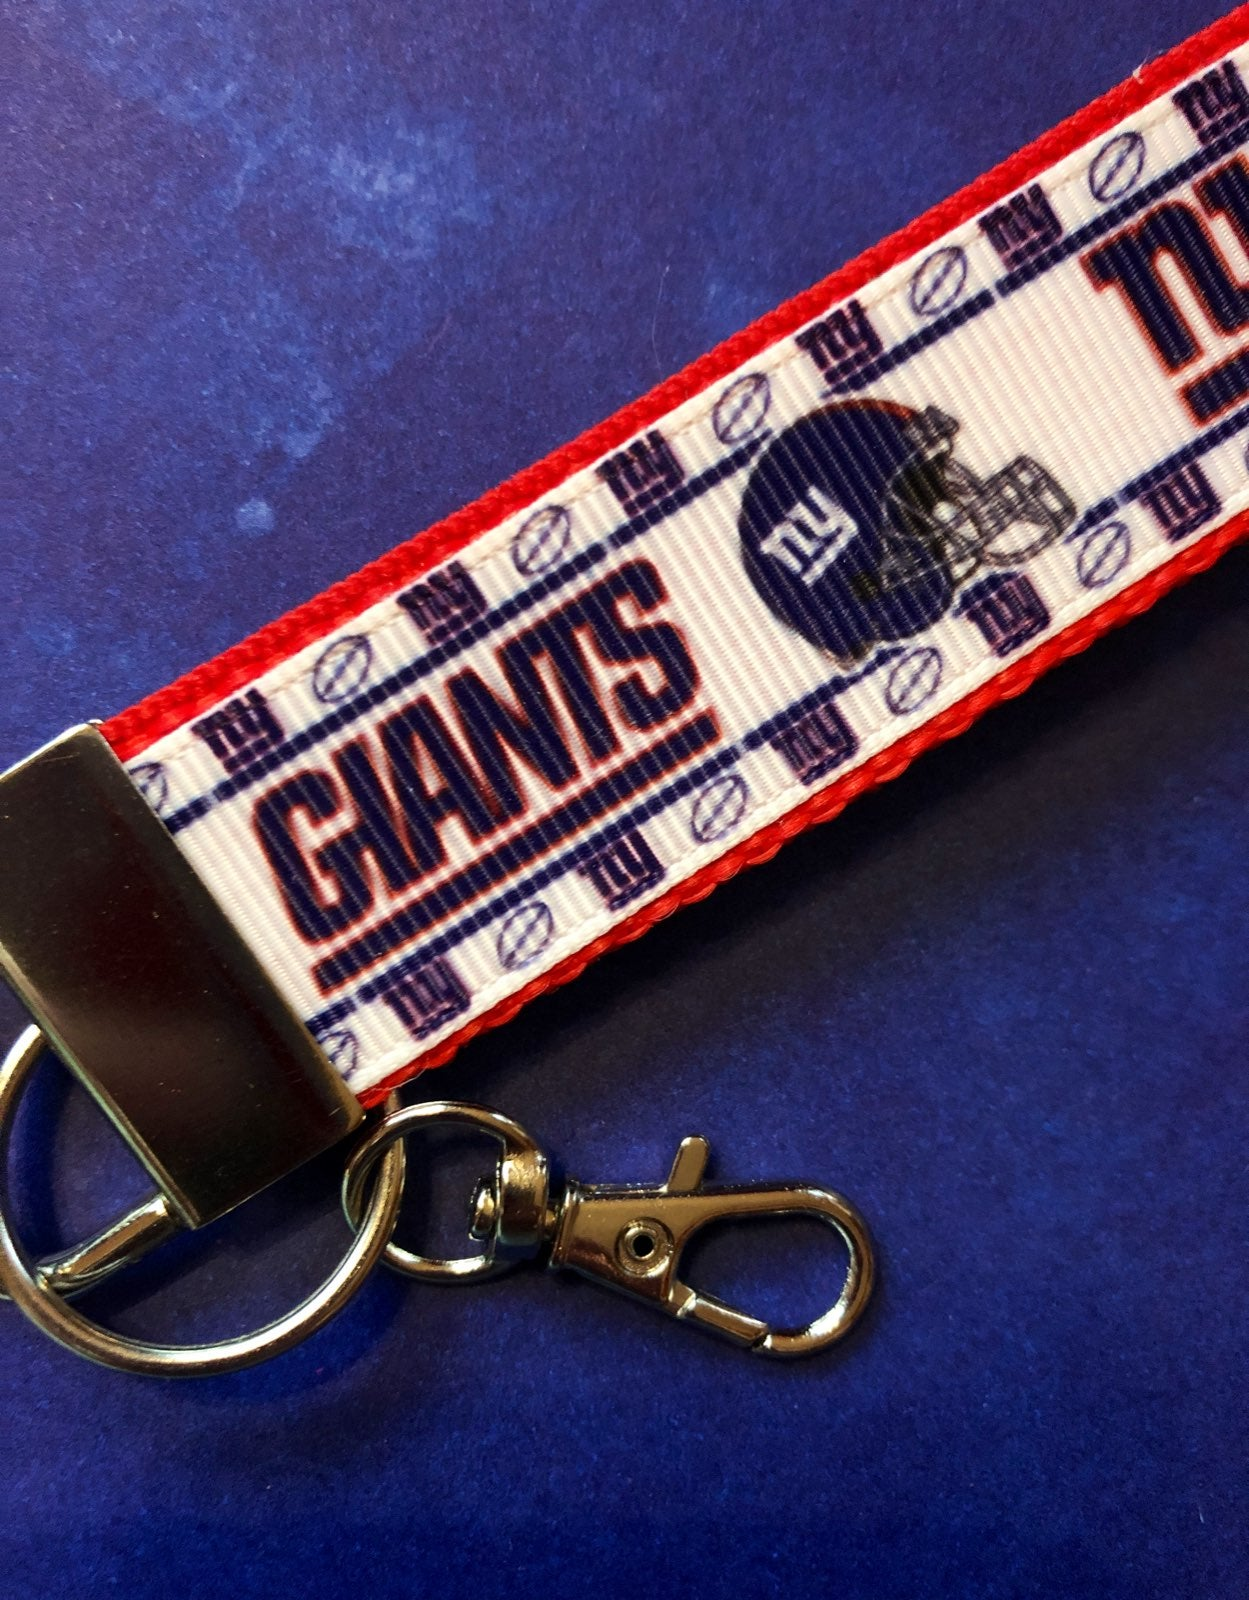 NY GIANTS Key Ring Fob Keychain